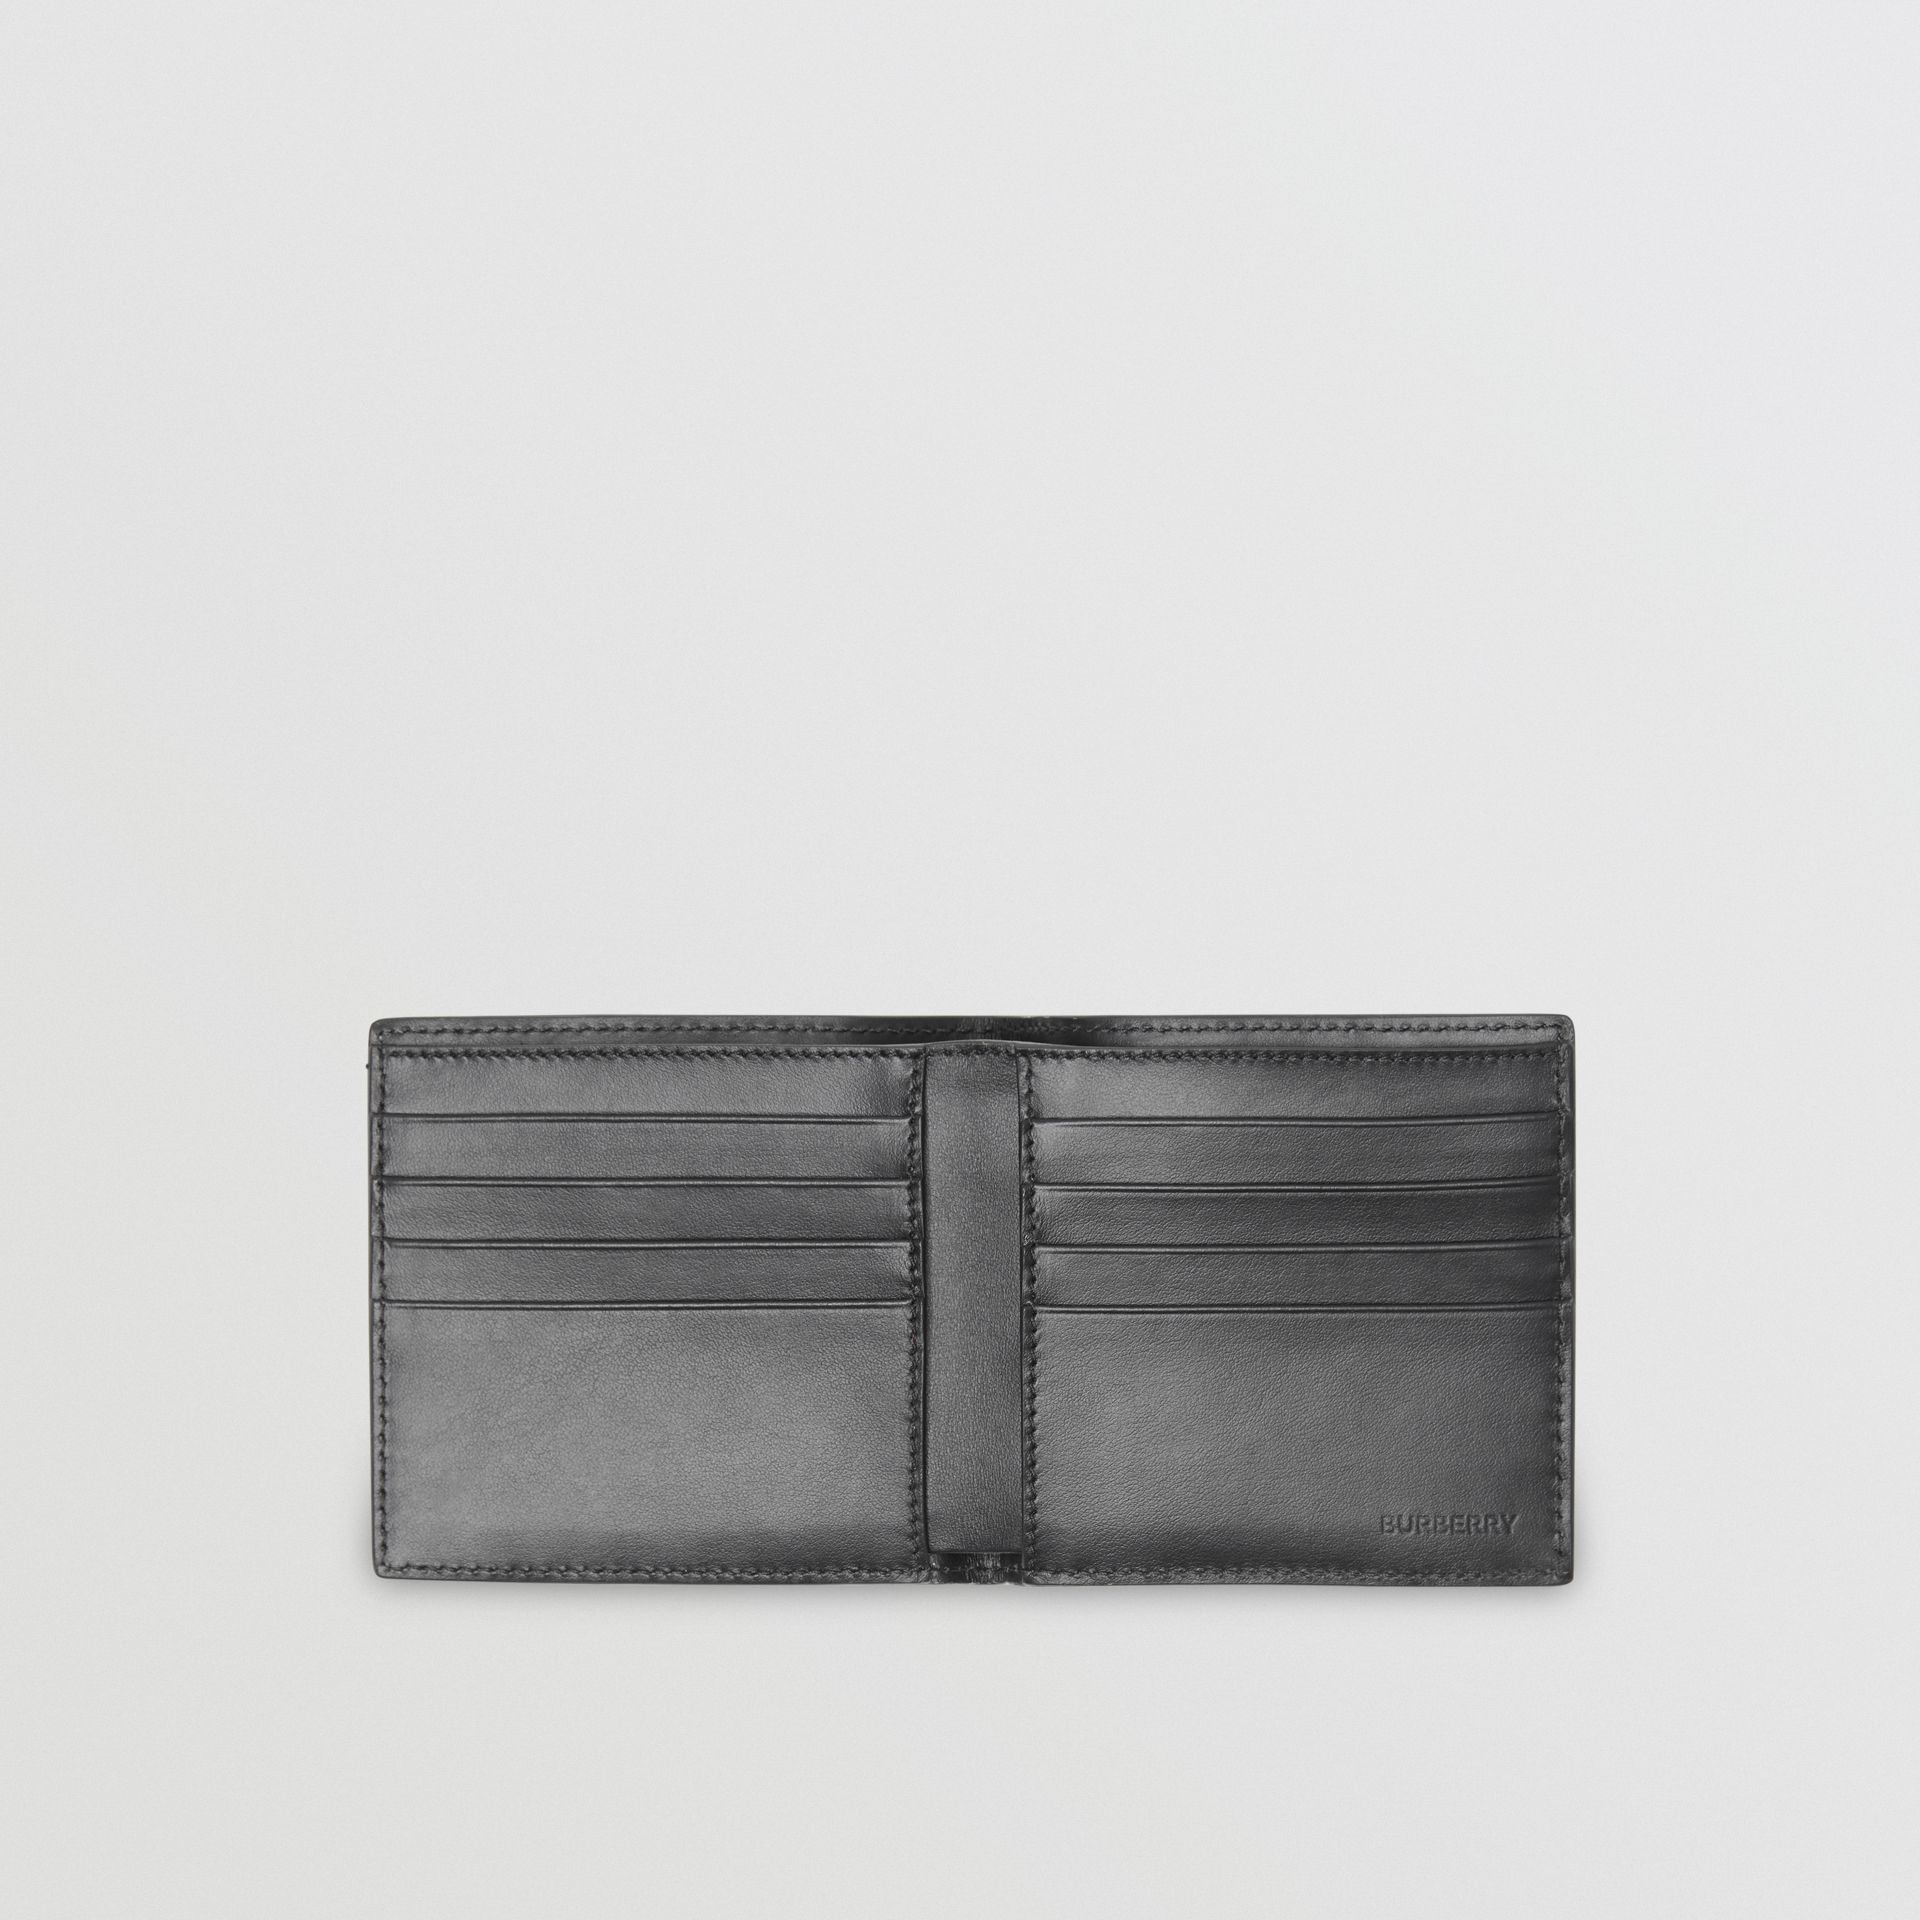 Monogram Leather International Bifold Wallet in Black - Men | Burberry - gallery image 3